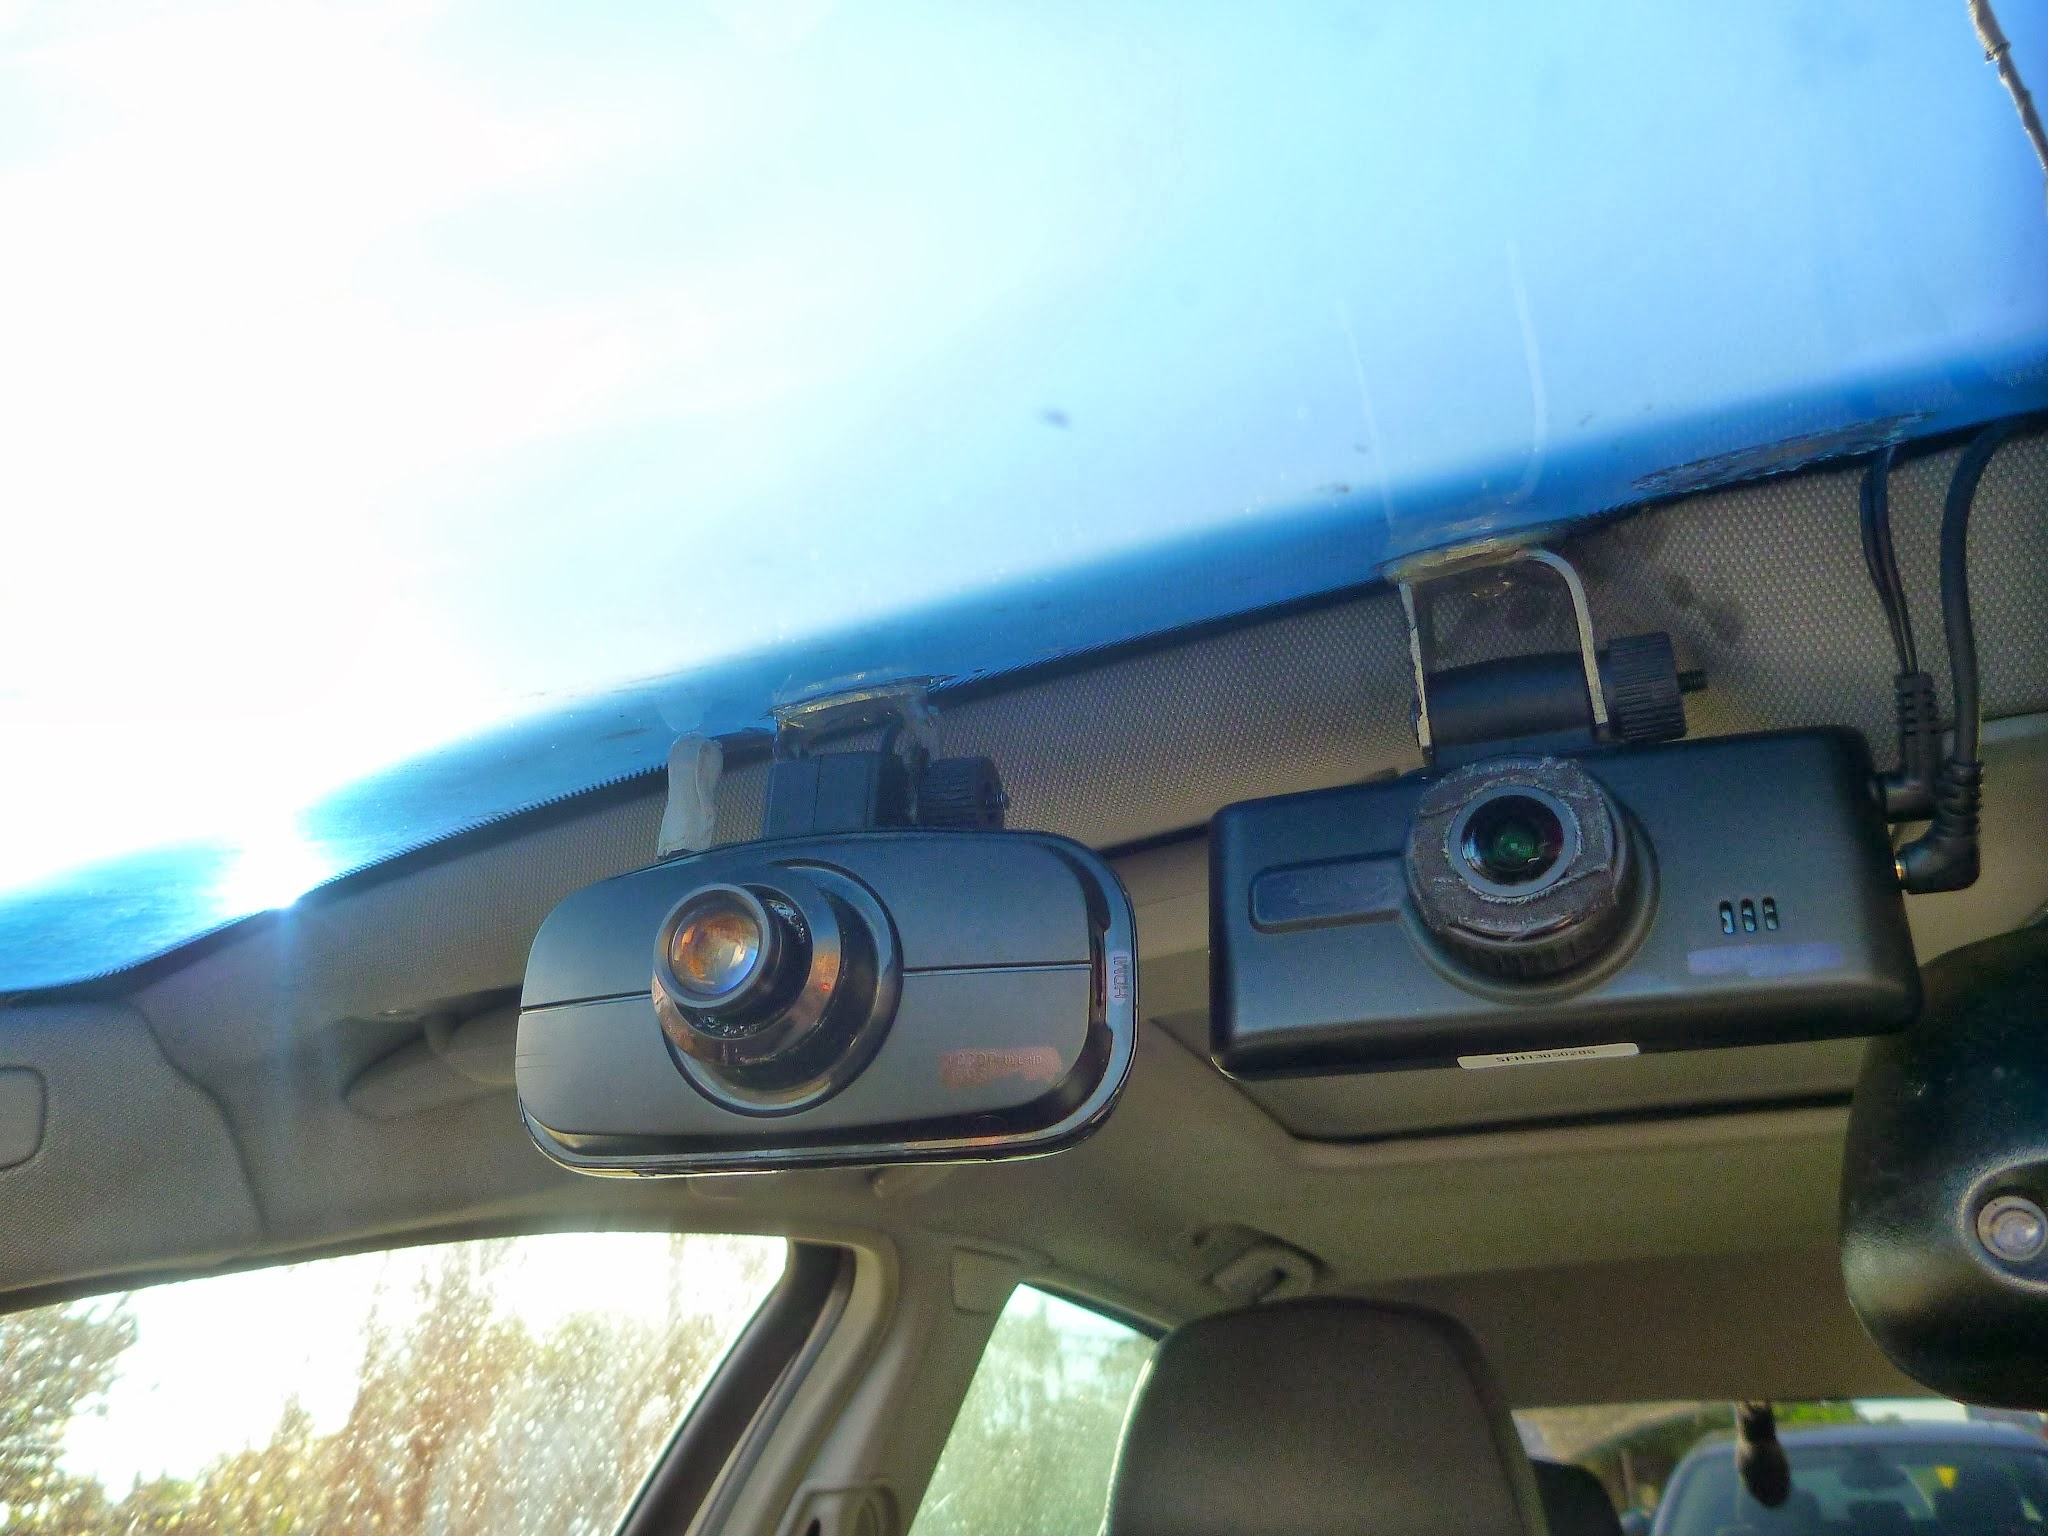 File:Dashcams P1210477.JPG - Wikimedia Commons